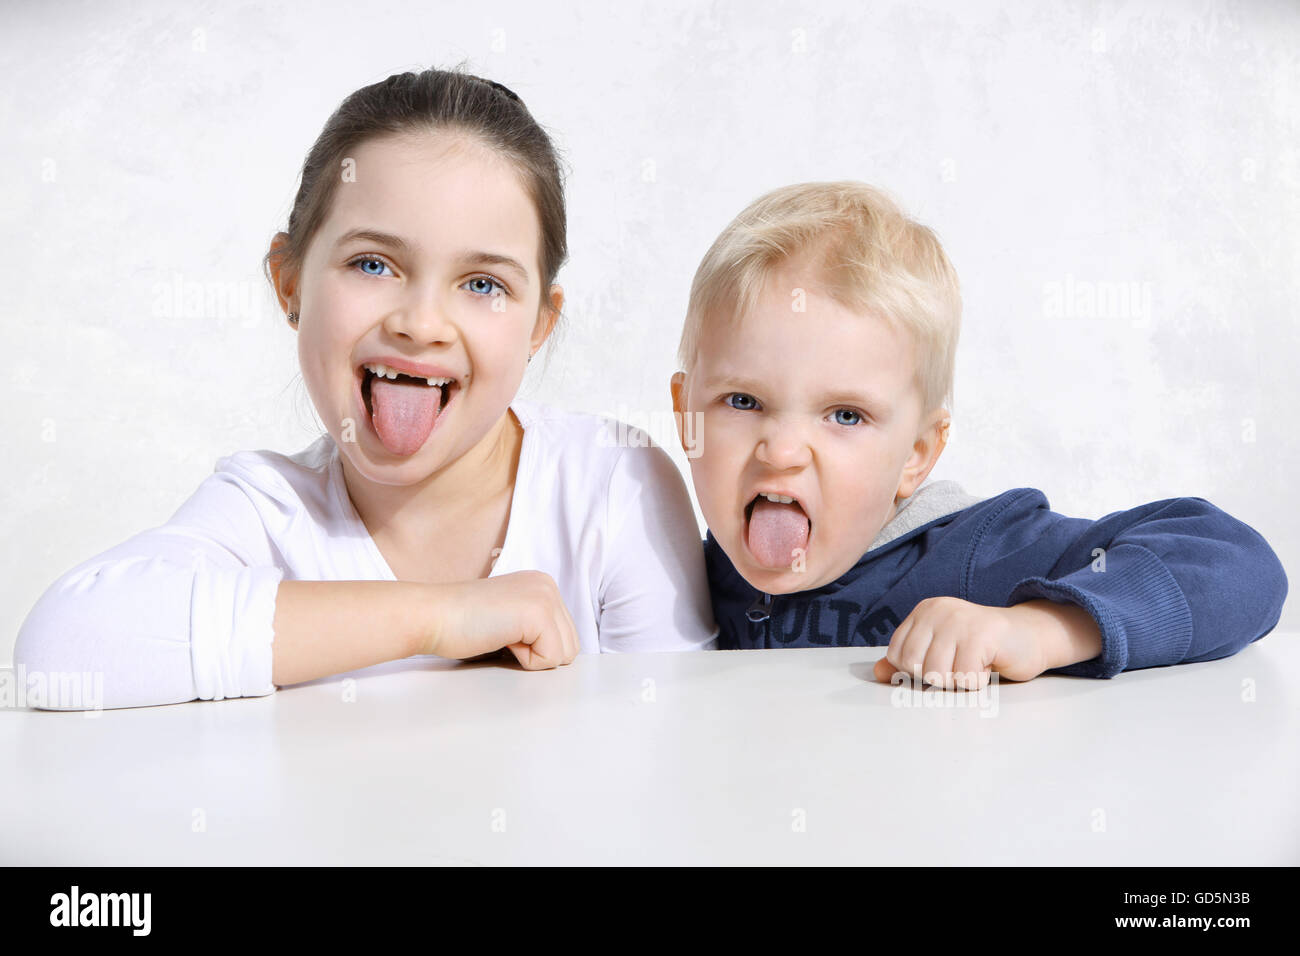 Brother and sister stick out tongues - Stock Image